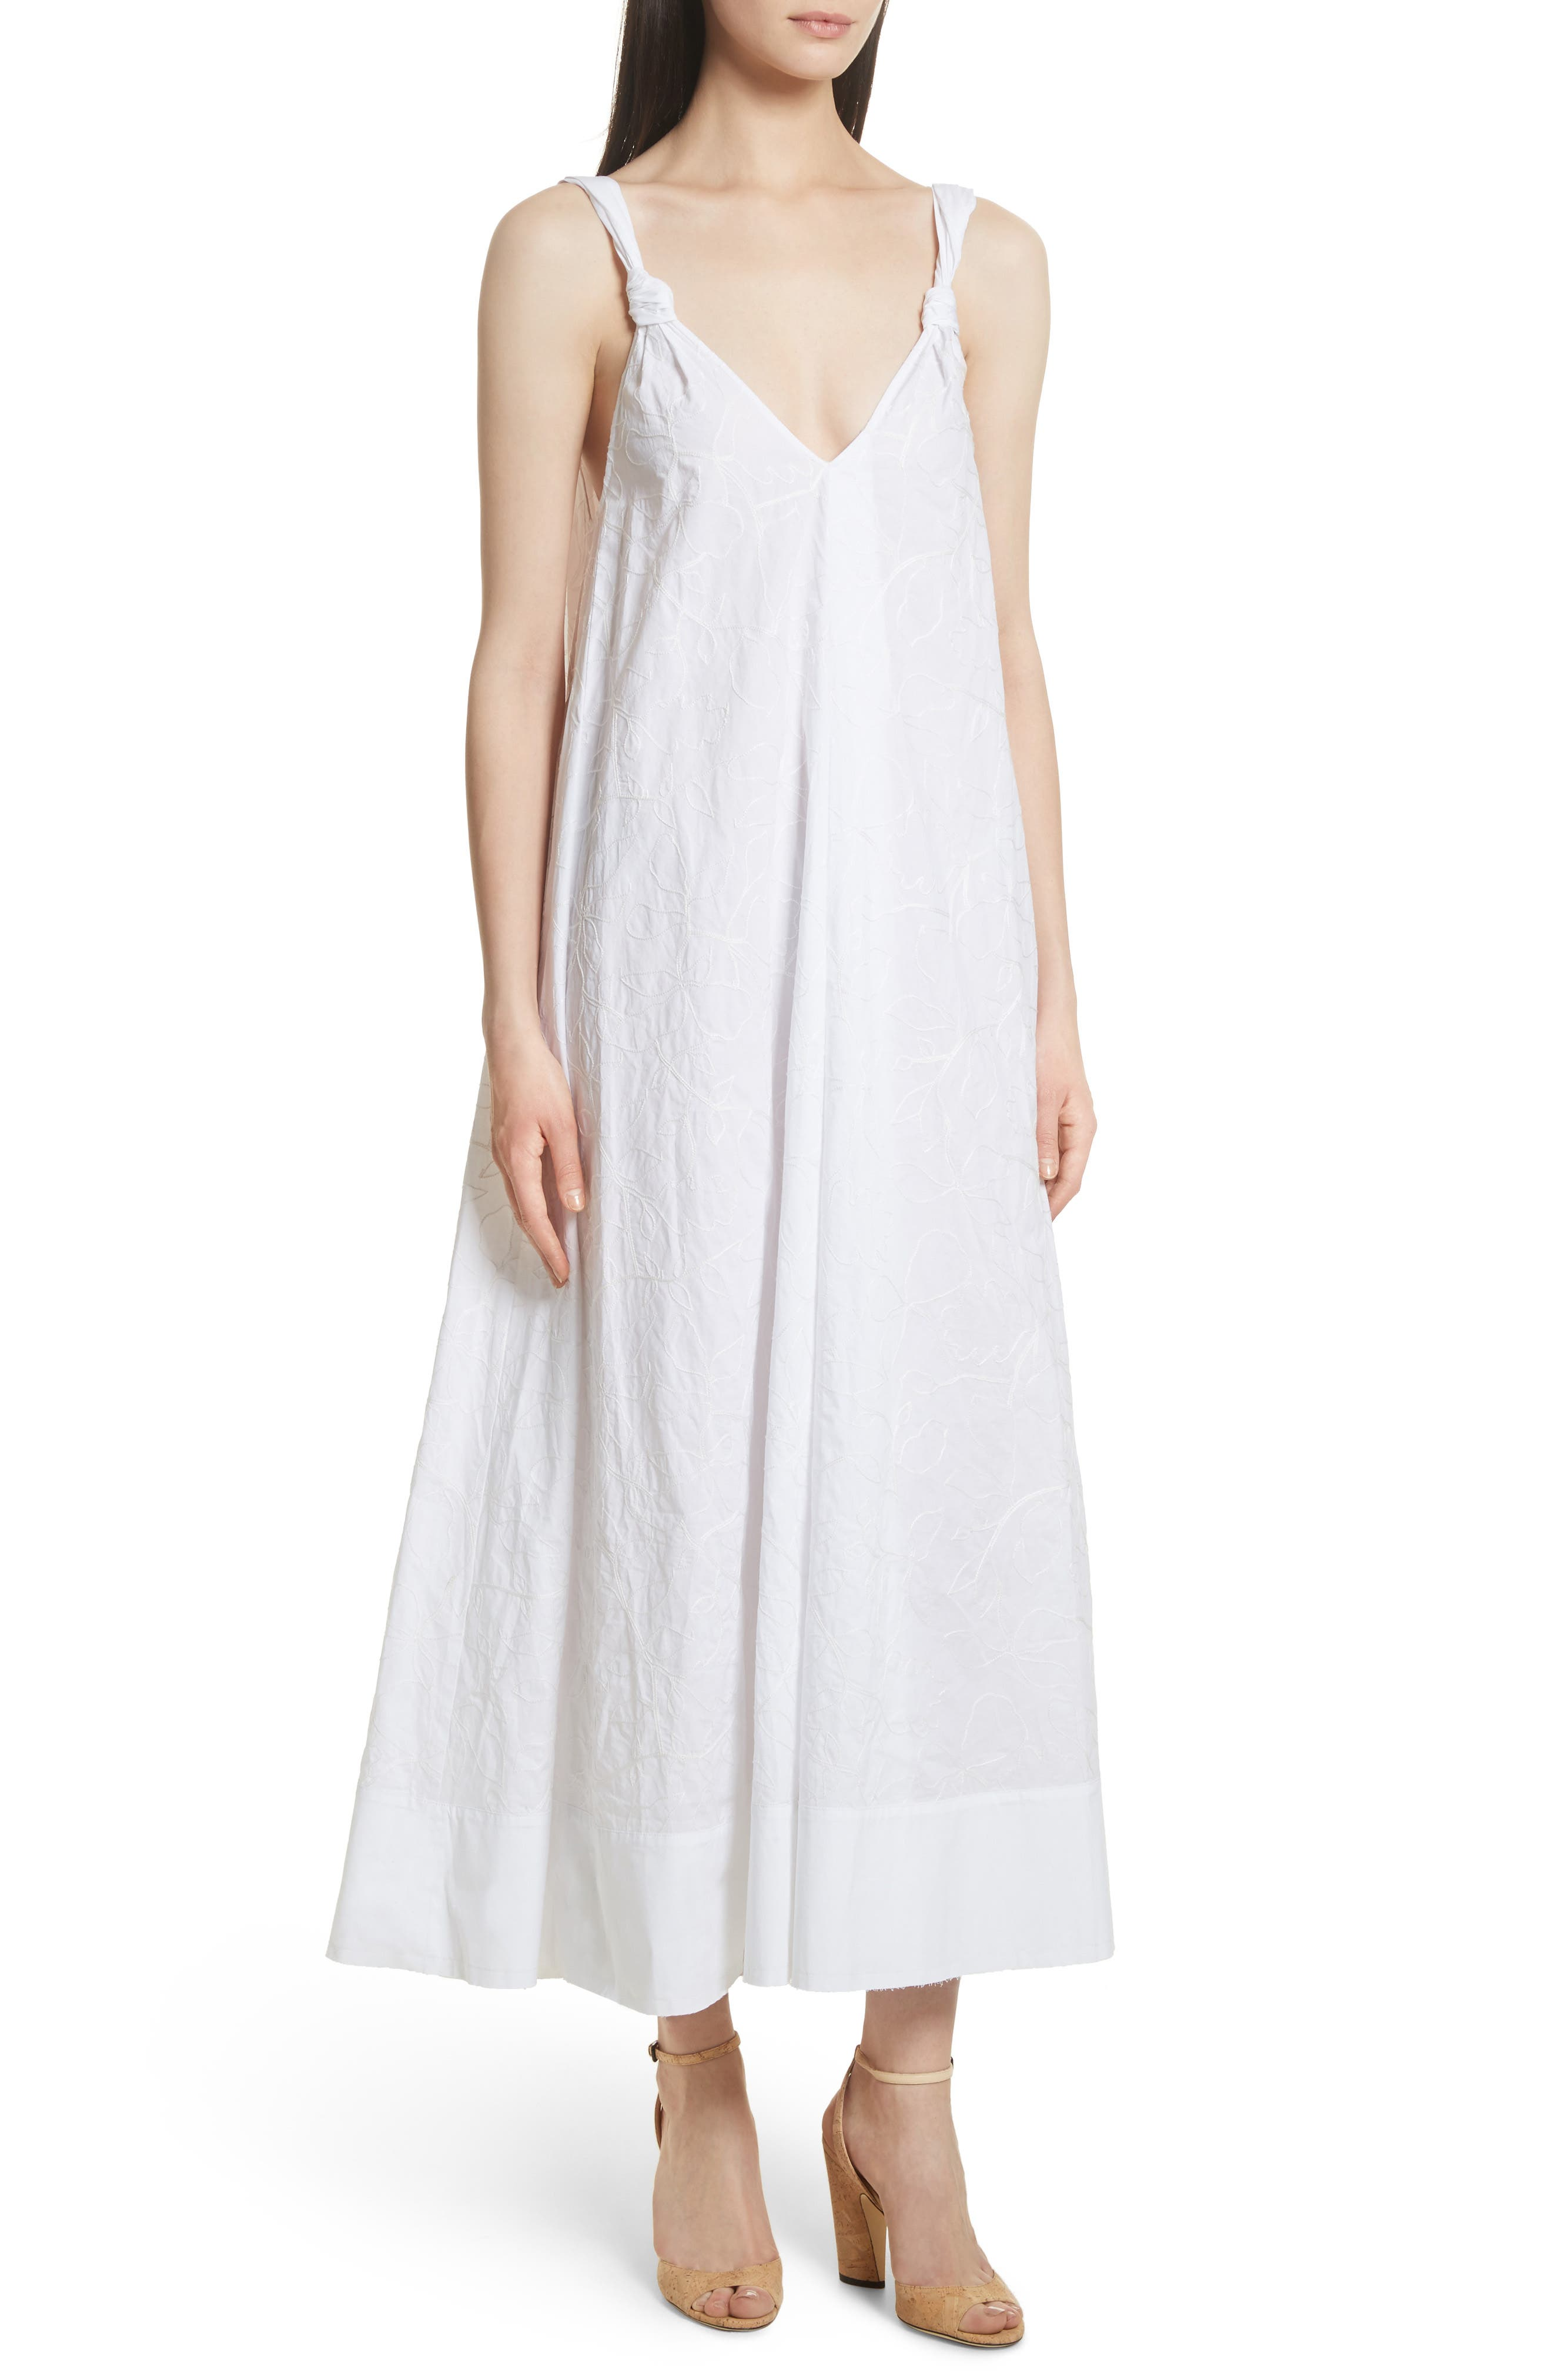 ELIZABETH AND JAMES Denali Embroidered Maxi Dress, Main, color, 100